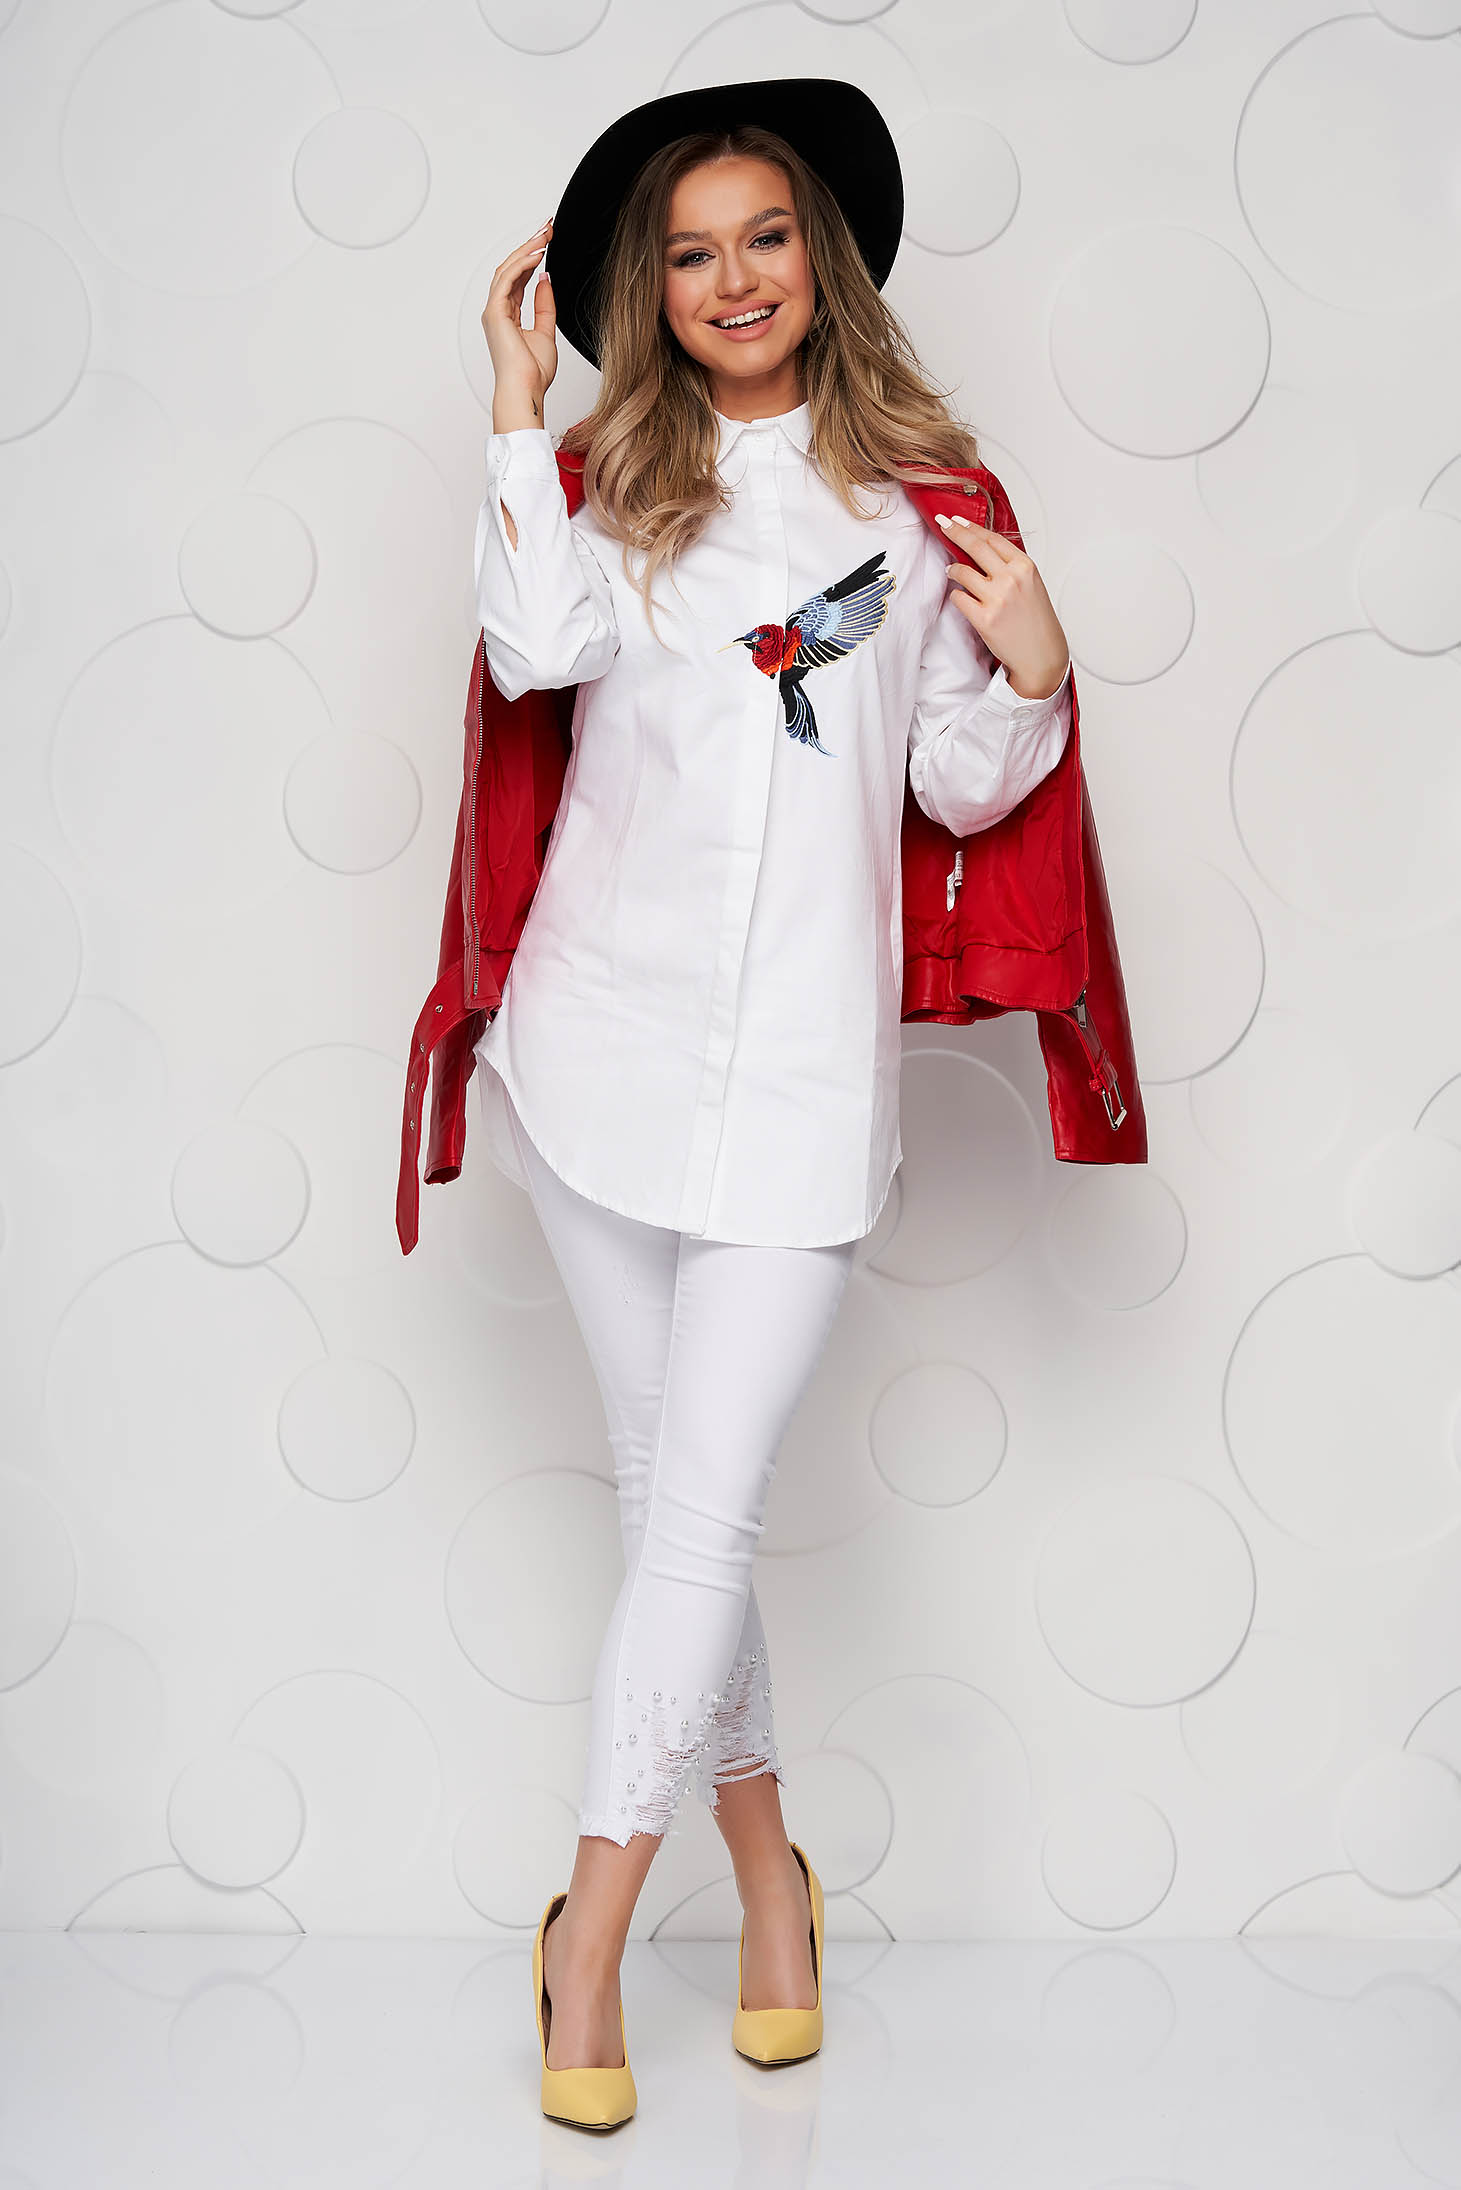 White women`s shirt poplin, thin cotton loose fit with embroidery details